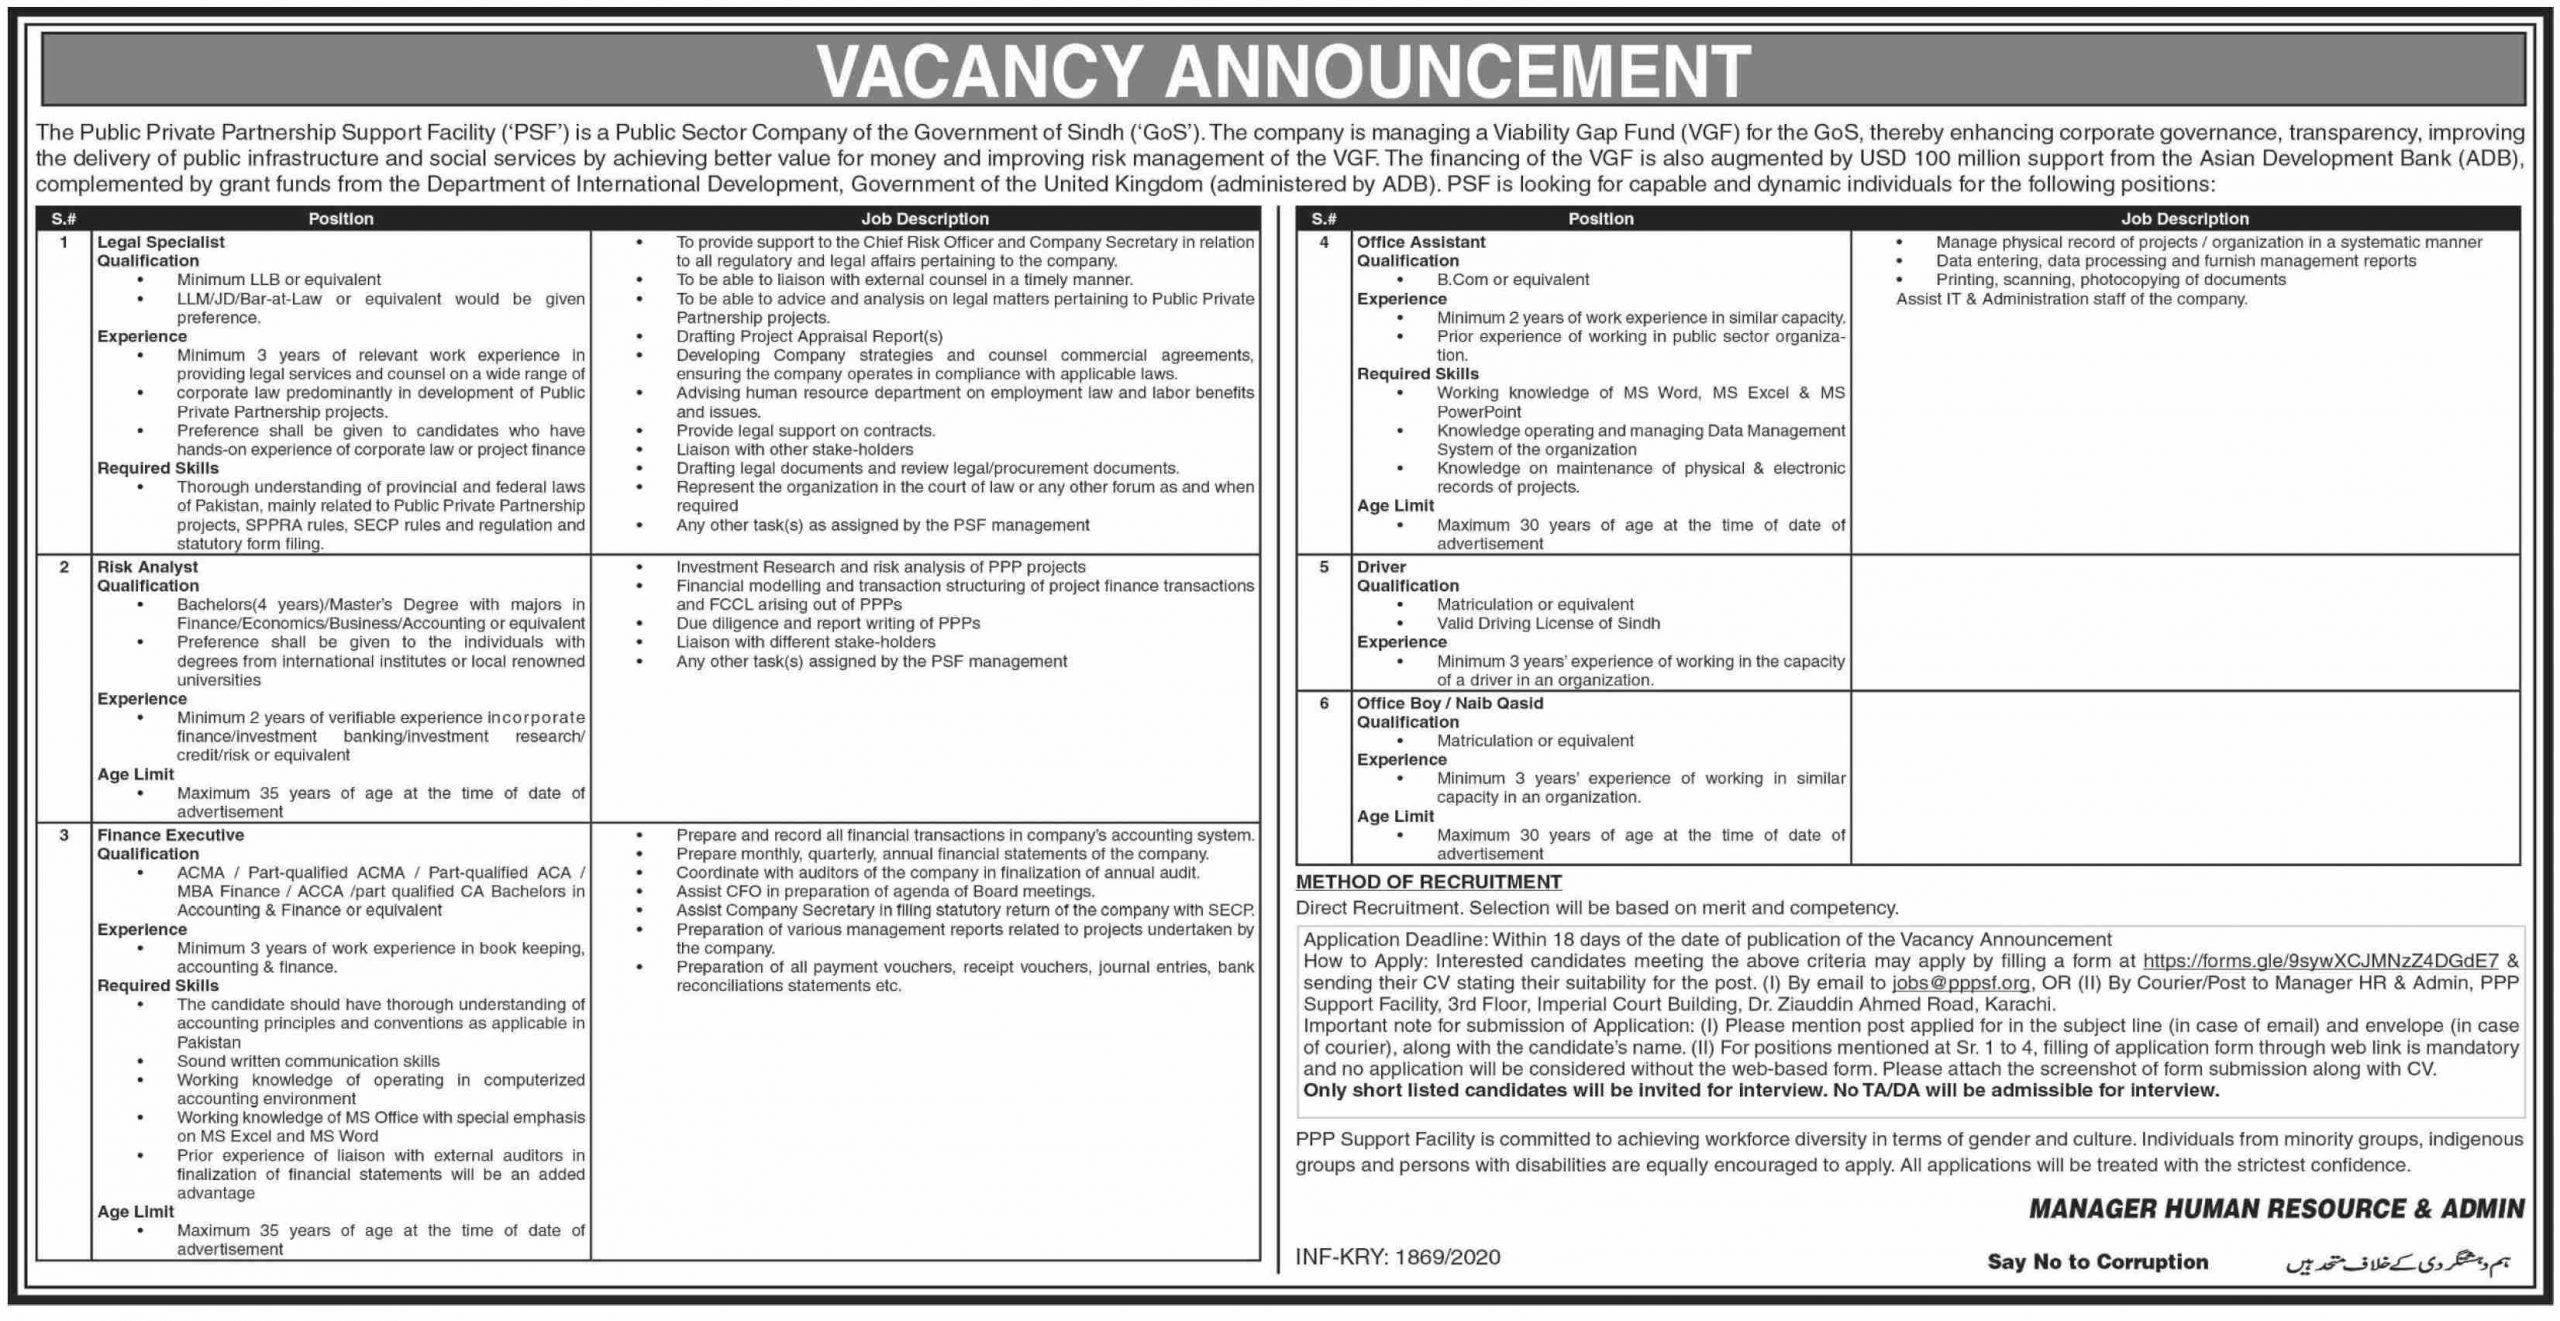 The Public Private Partnership Support Facility PSF Jobs July 2020